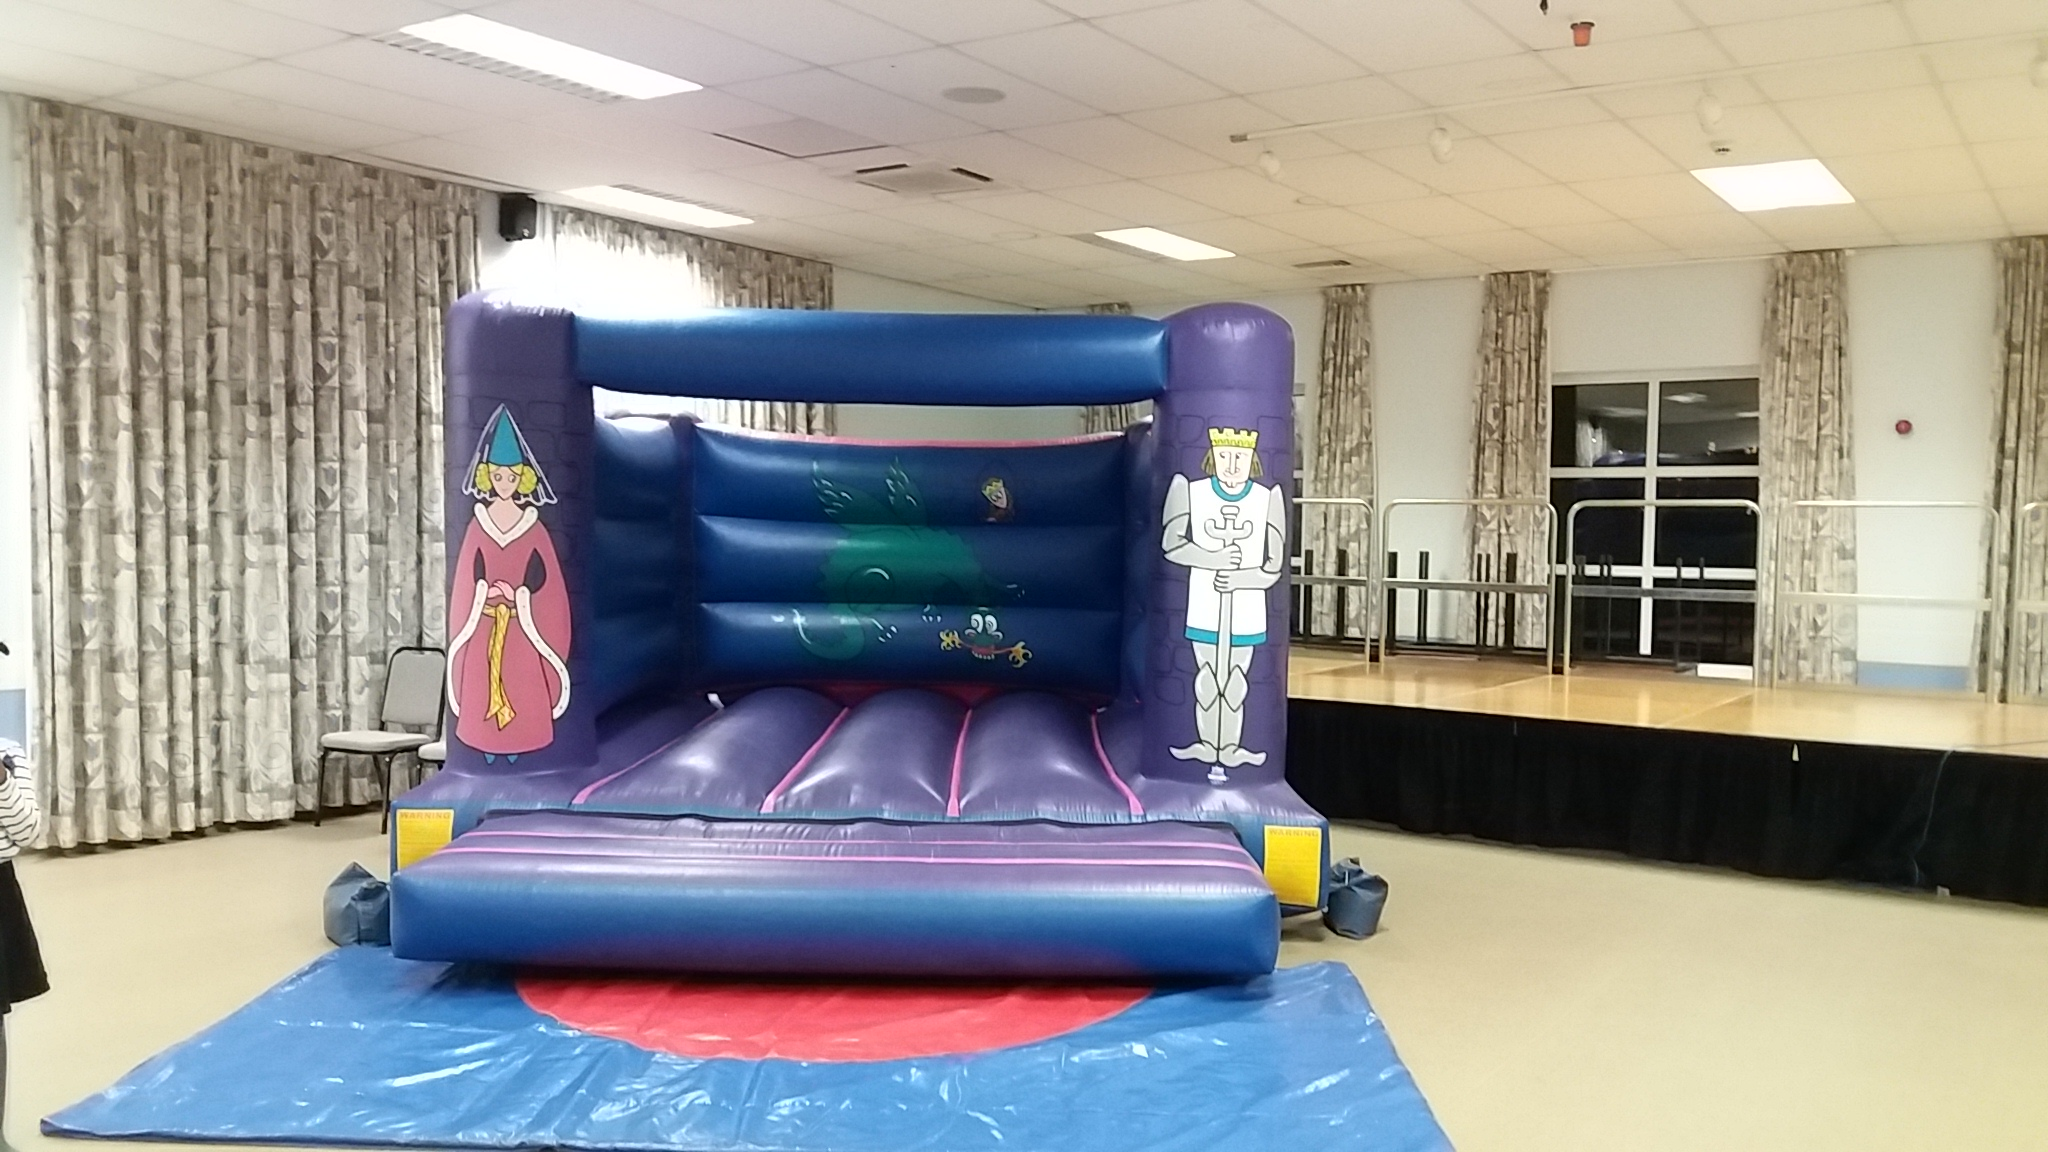 Knights Bouncy Castle at Hedge End 2000 hall